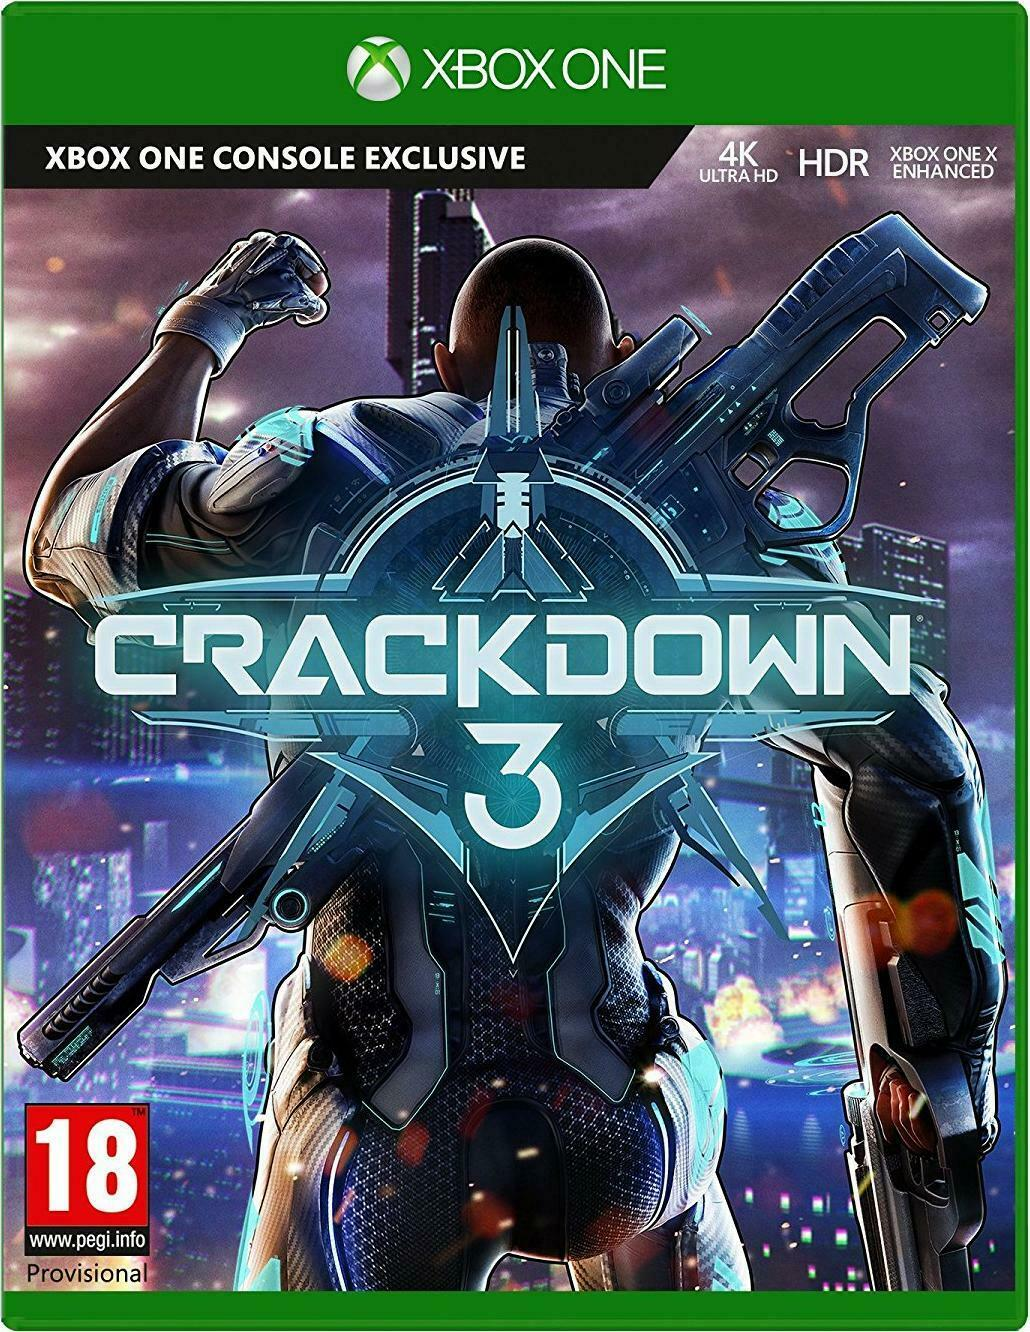 Crackdown 3 for Microsoft Xbox One Video Game